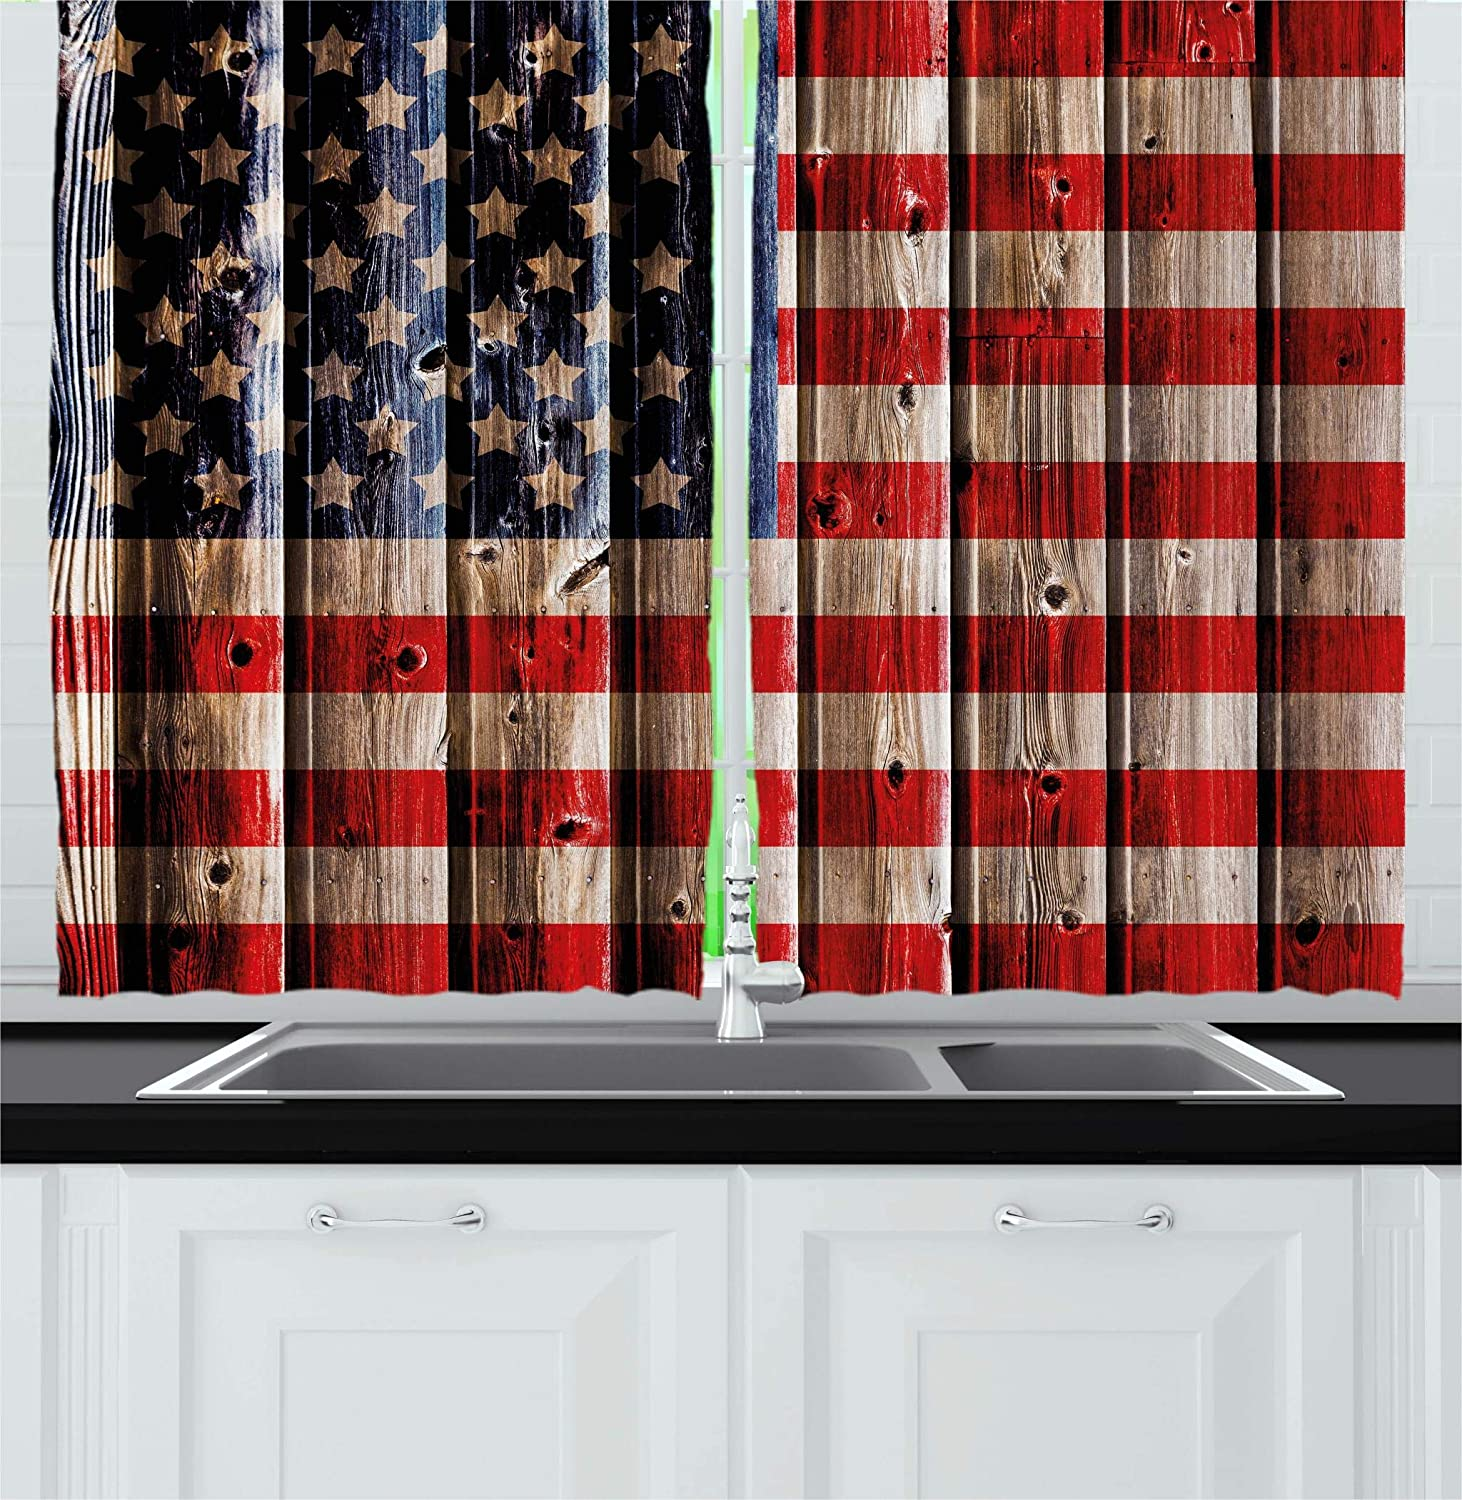 Ambesonne 4th of July Kitchen Curtains, Rustic Backdrop with American Flag Design Wooden Boards Design, Window Drapes 2 Panel Set for Kitchen Cafe, 55 W X 39 L Inches, White Navy Blue Vermilion